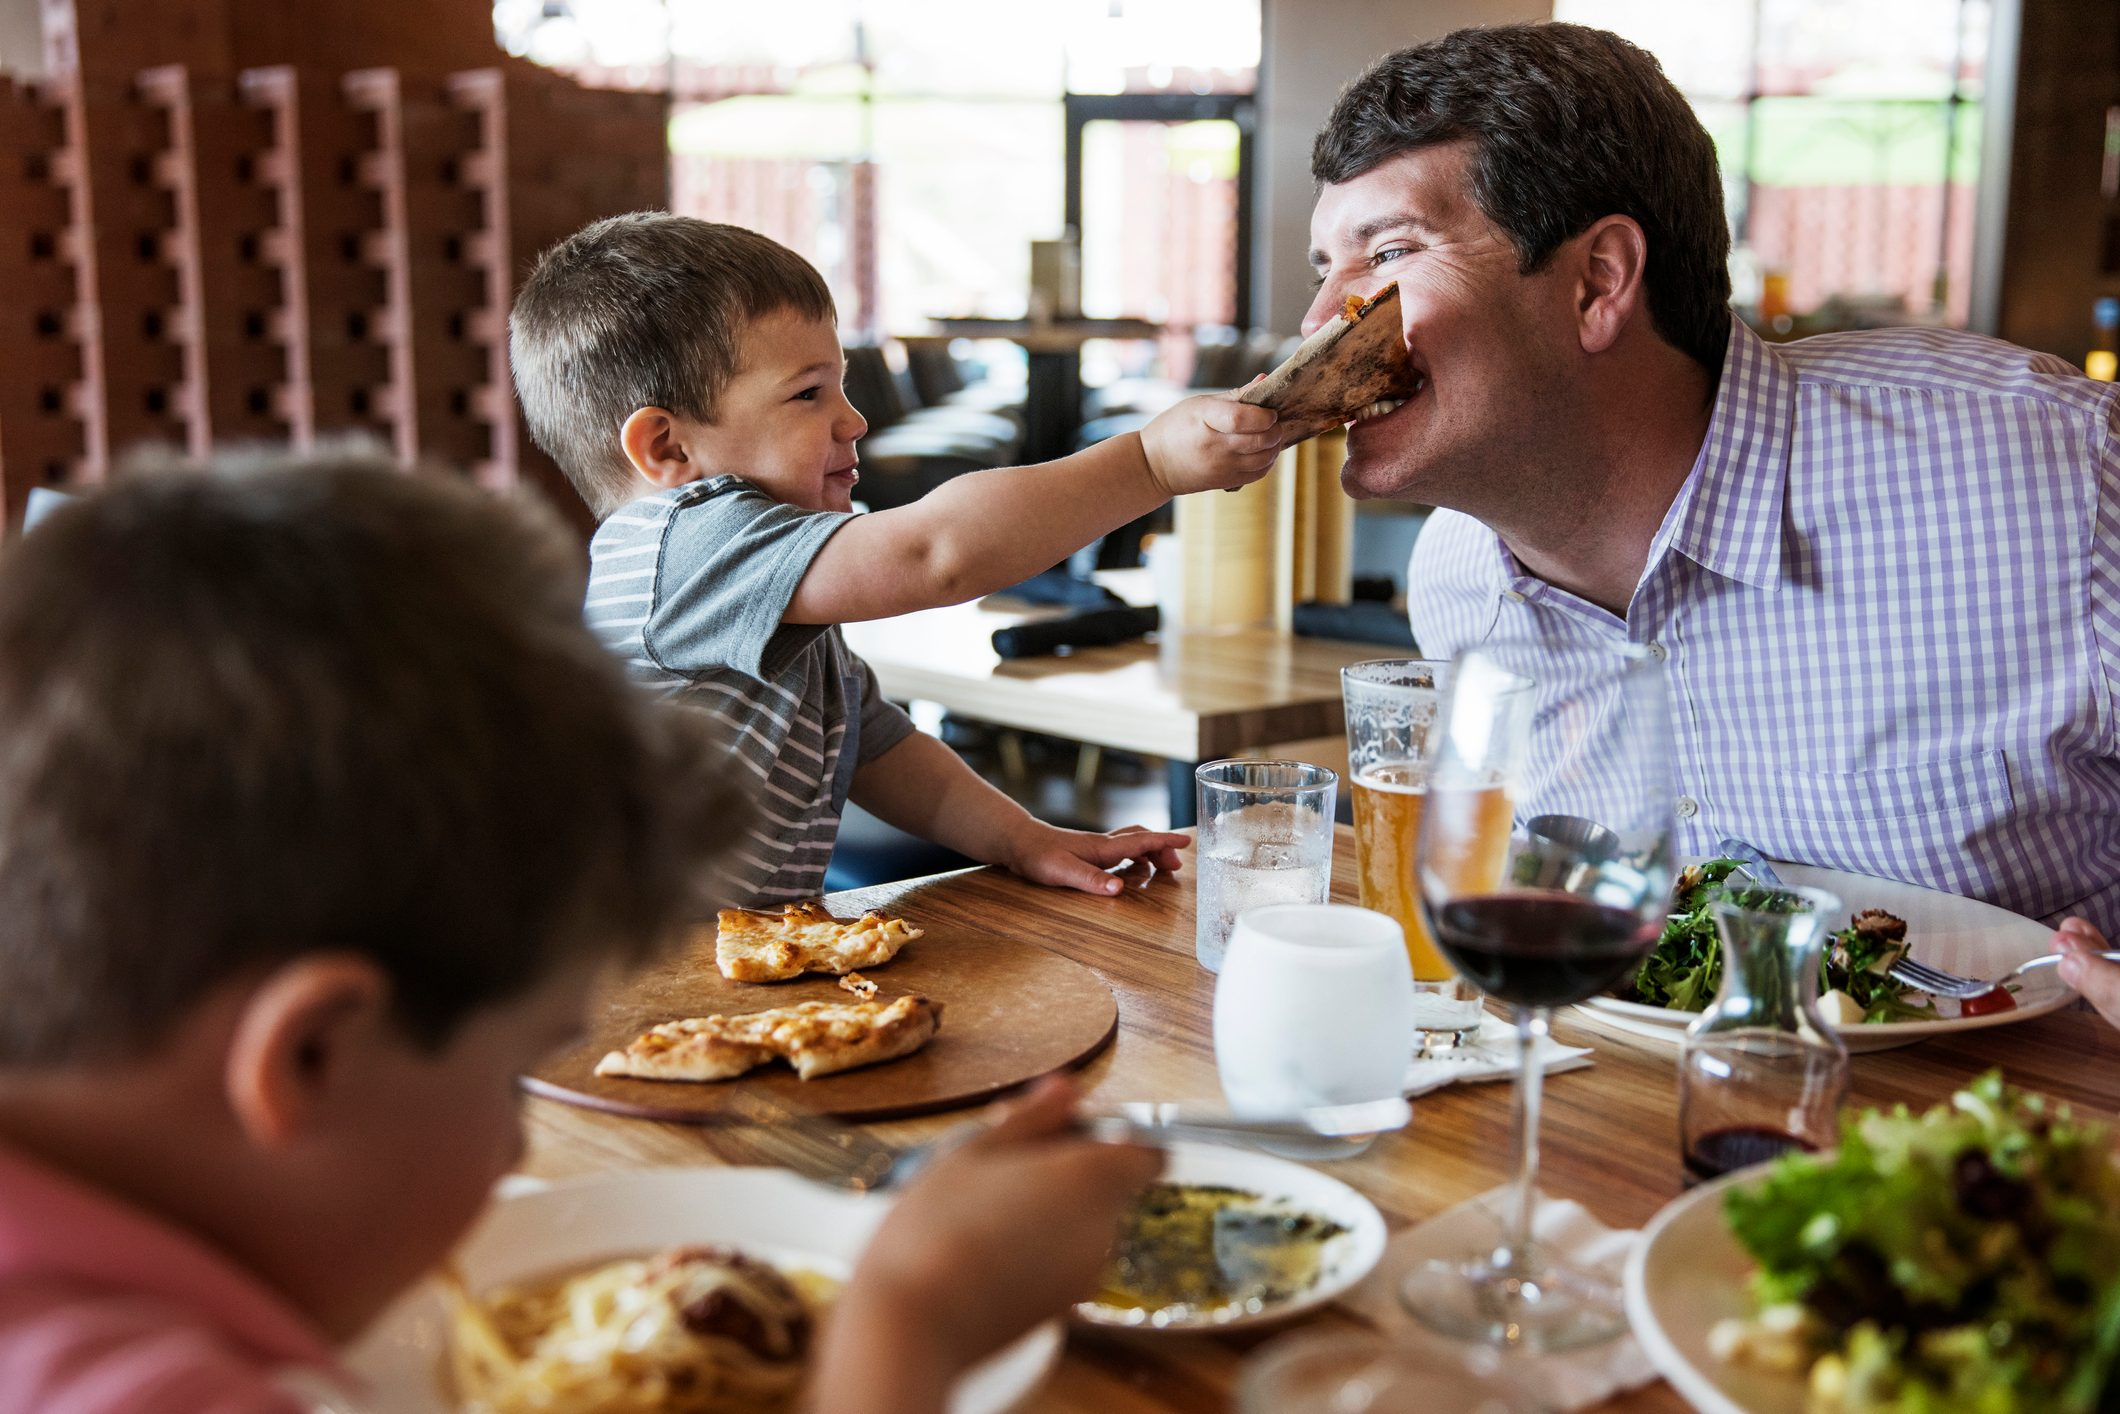 Boy feeding pizza to father in restaurant